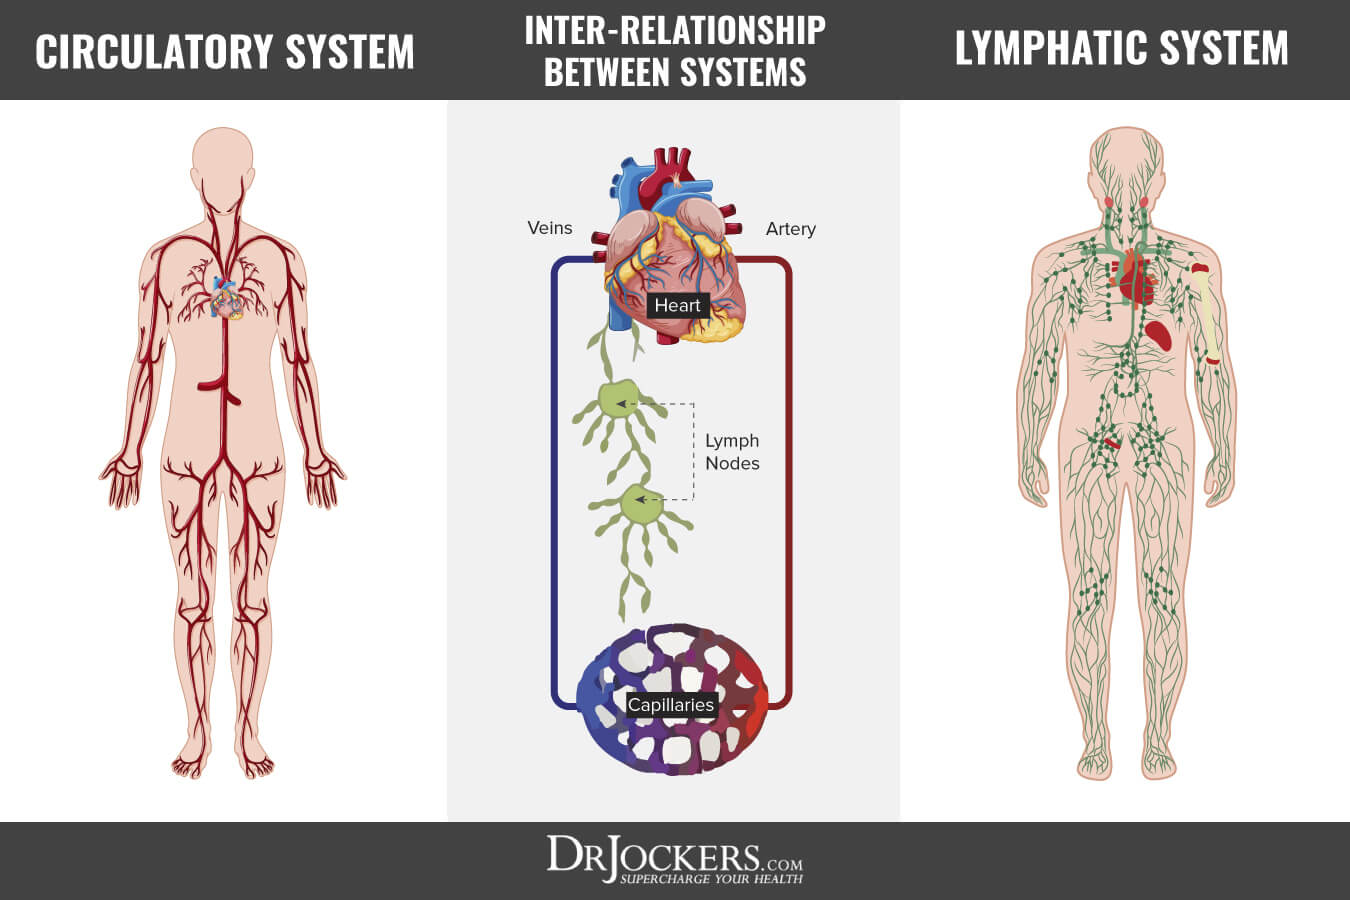 10 Ways to Improve Your Lymphatic System - DrJockers com